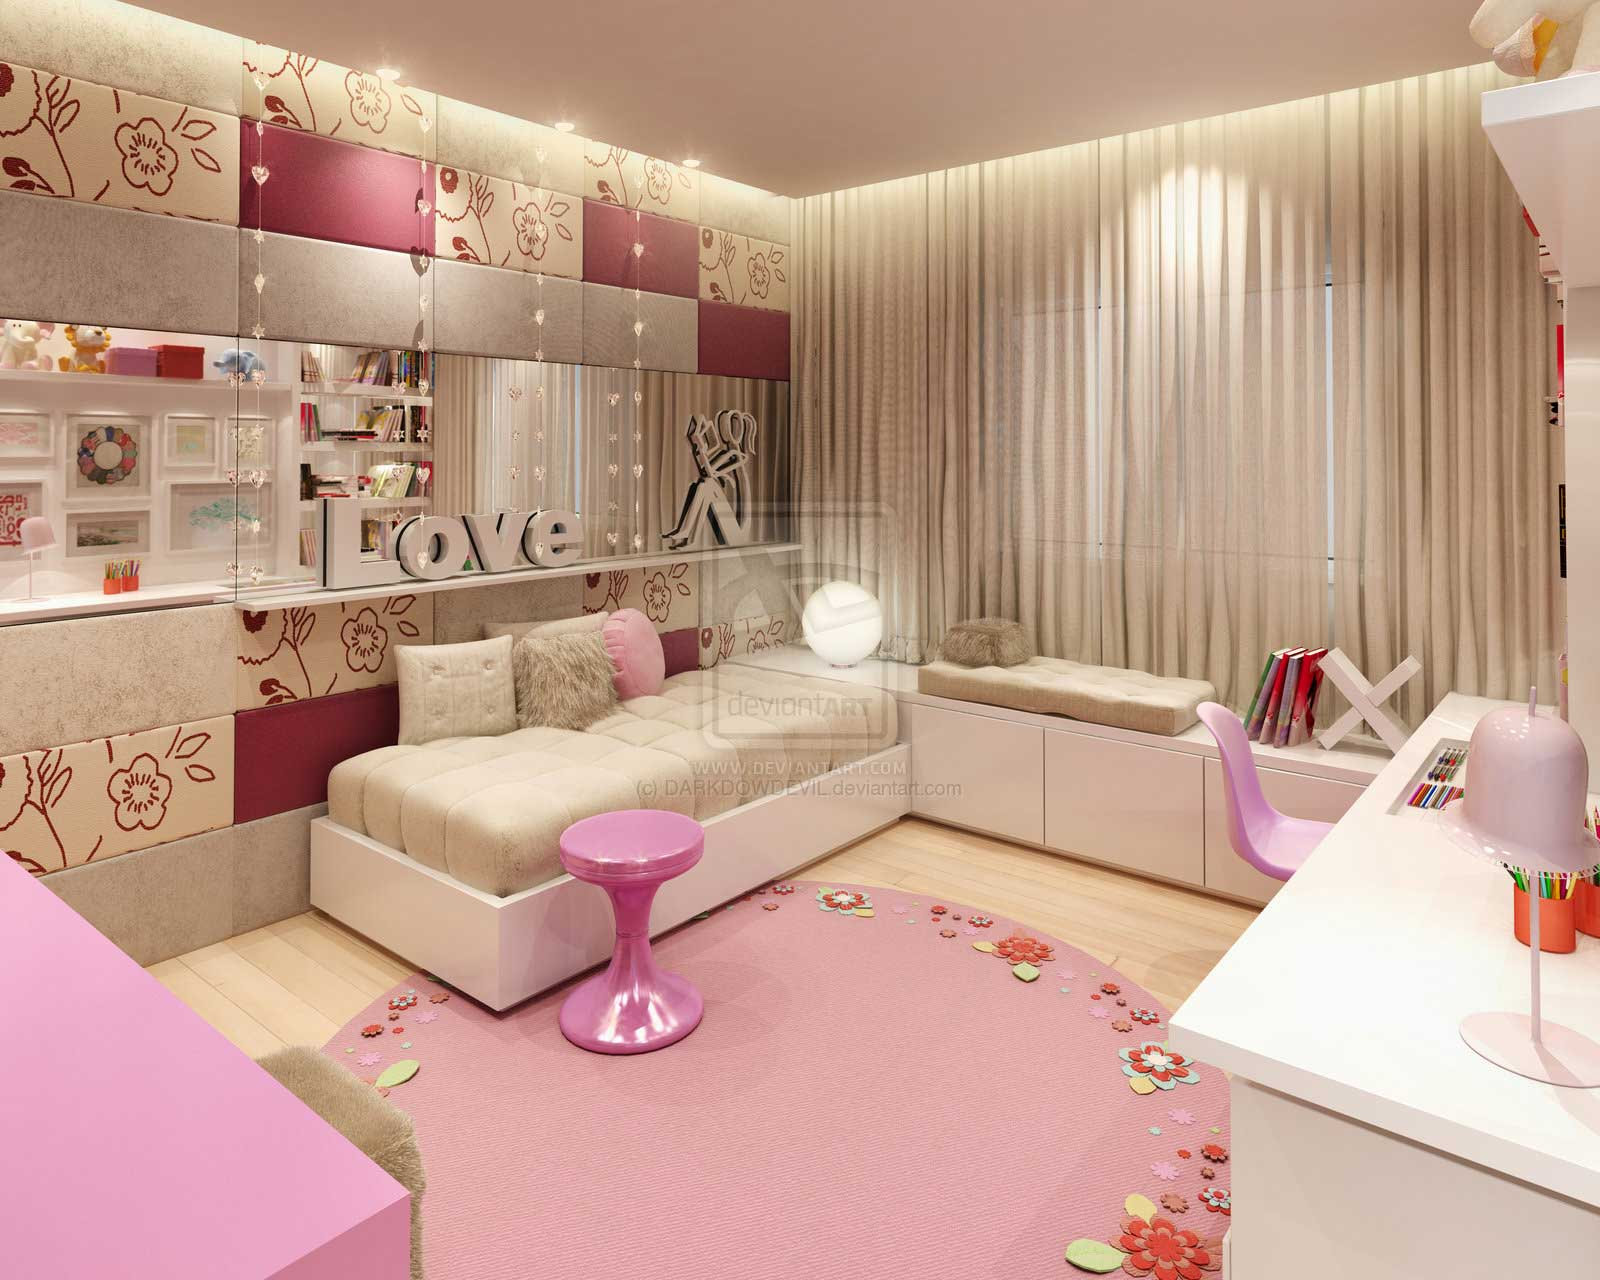 Comfort pink girl bedroom by darkdowdevil interior design ideas - Bedroom for girl interior design ...